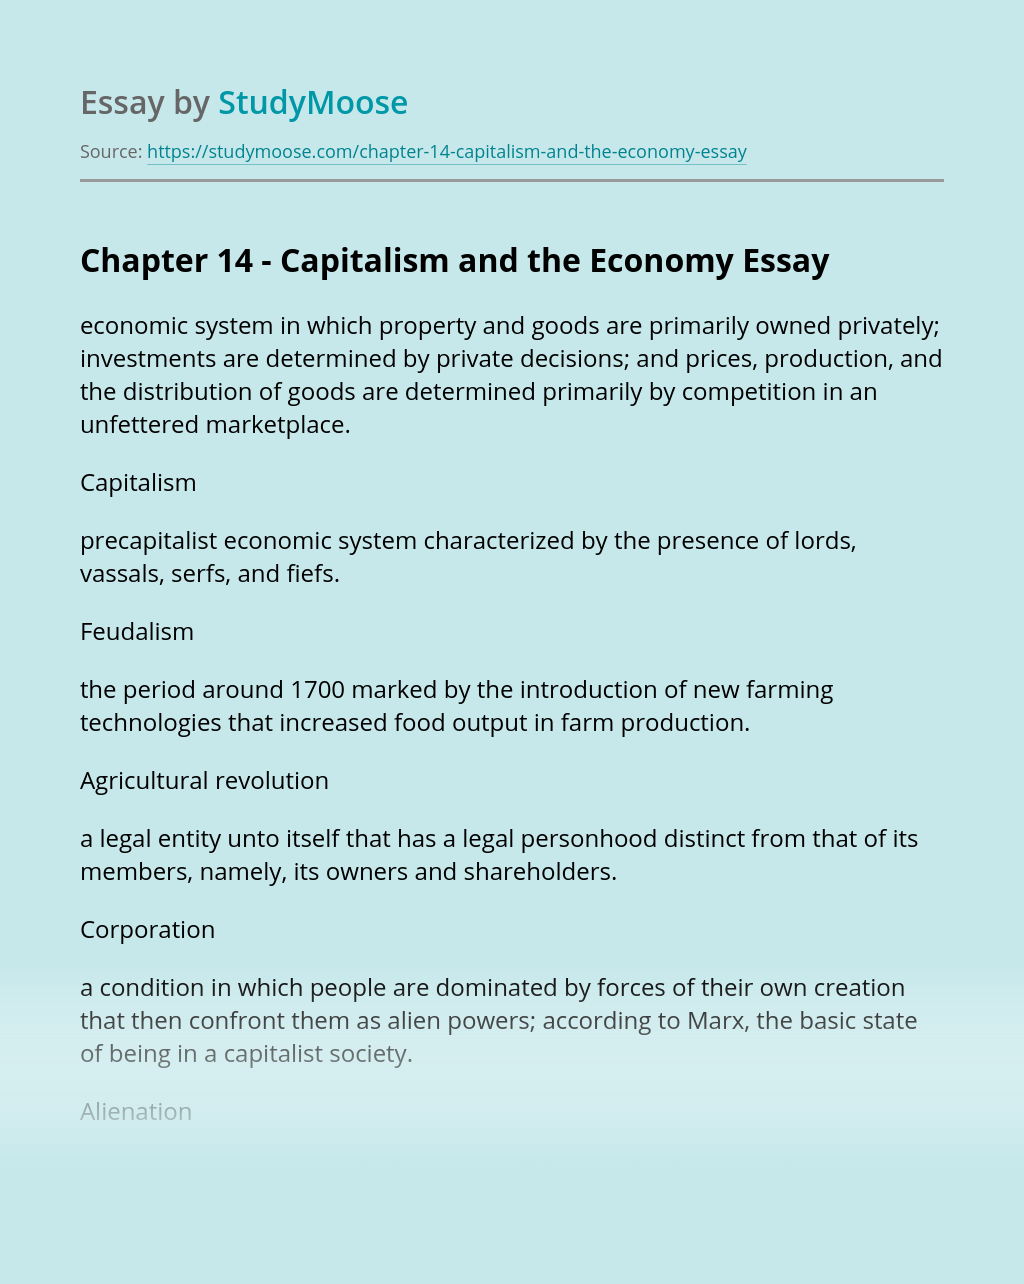 Chapter 14 - Capitalism and the Economy